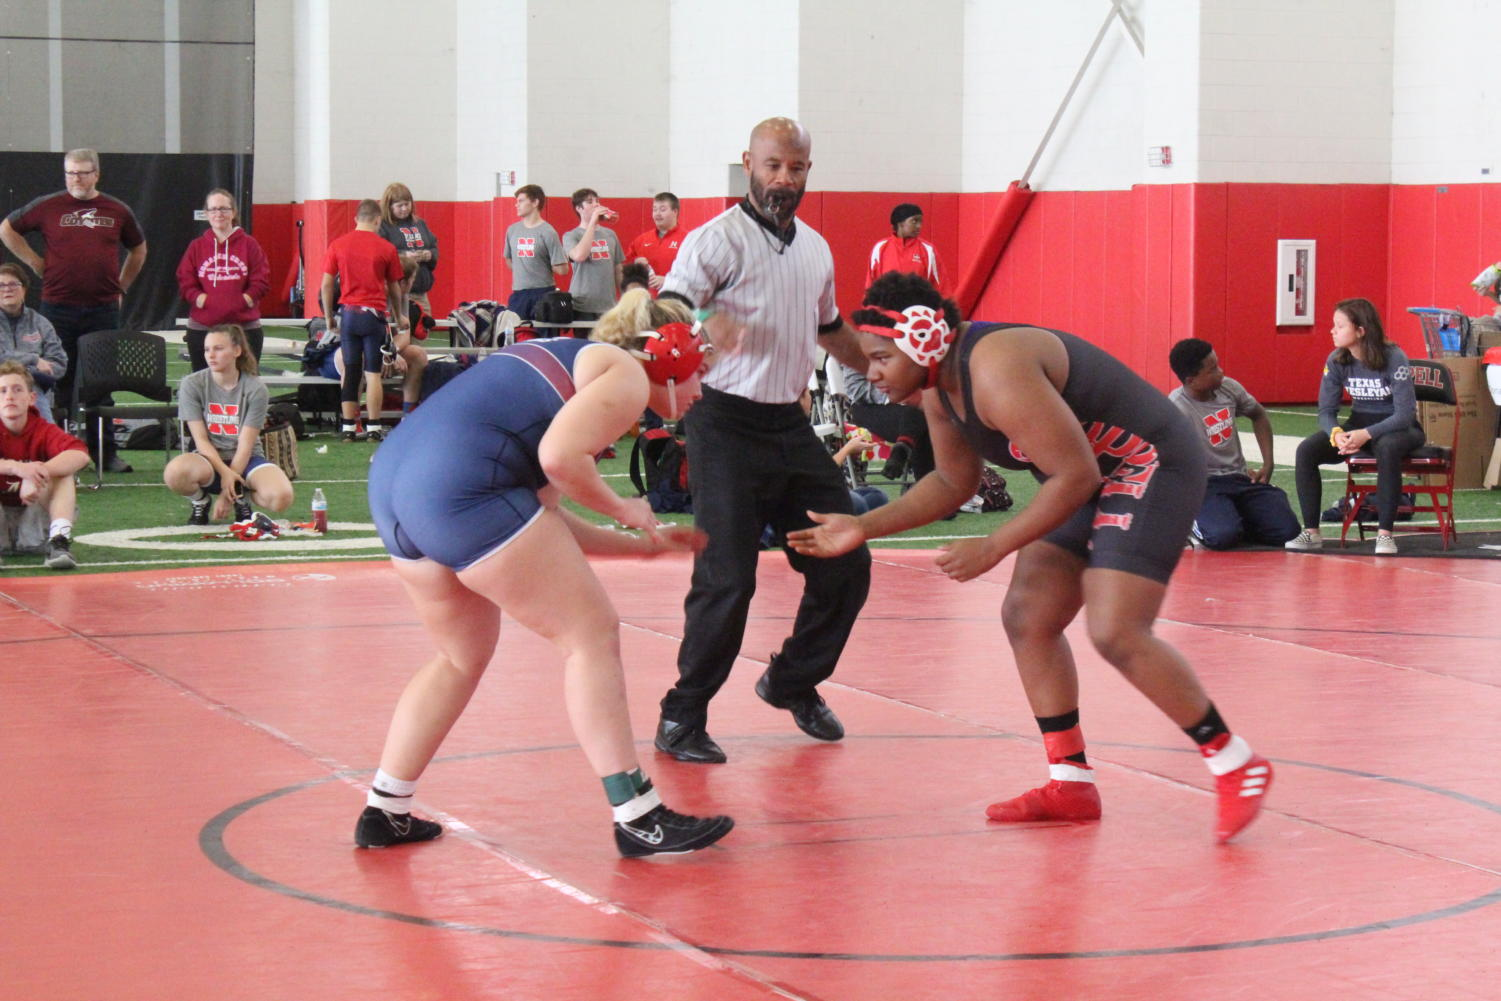 Coppell junior wrestler Hannah Francis prepares to wrestle her opponent during the Coppell Round-Up on Nov. 23. Francis has been wrestling for the school team for two years and holds three All-American titles.